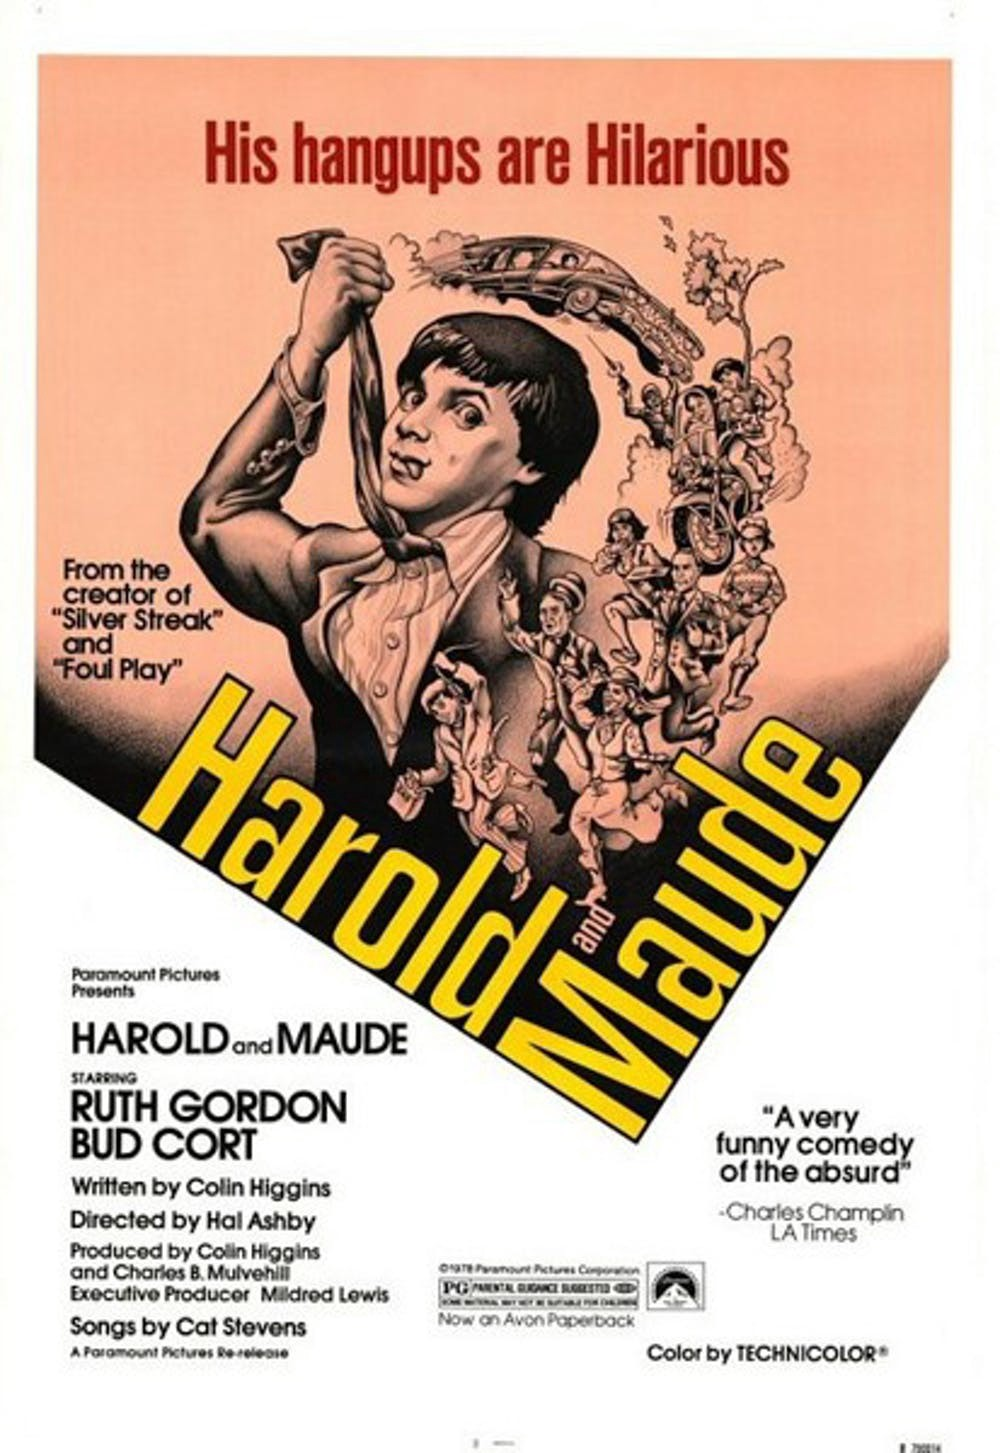 A poster for a re-release of Harold and Maude (1971)